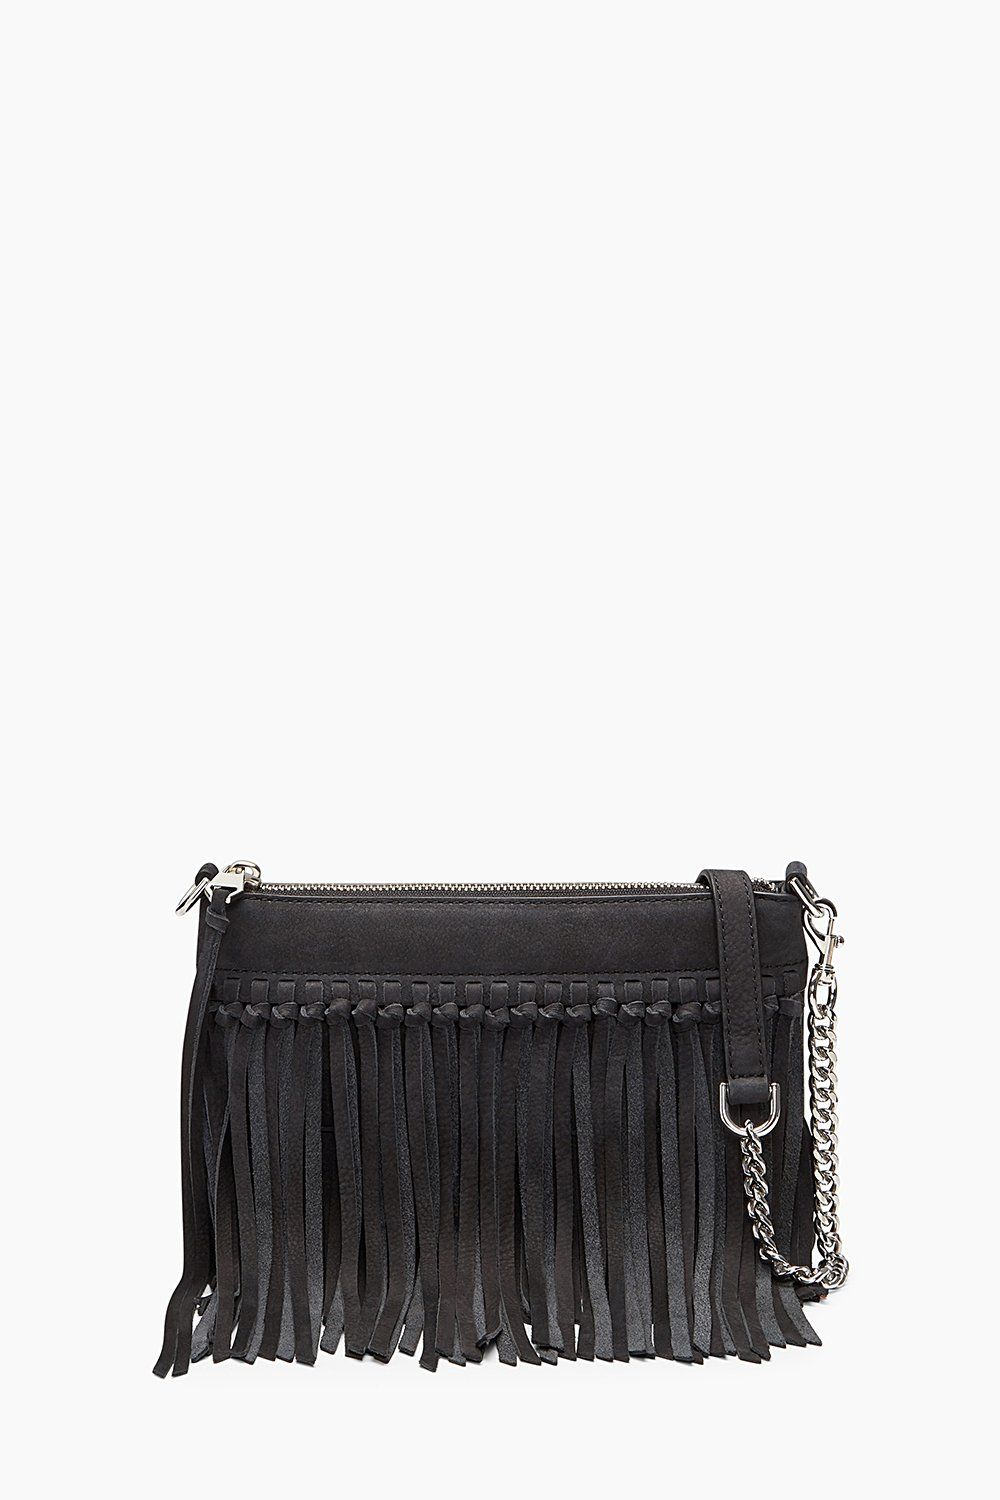 893b8939a55 Stevie Top Zip Crossbody | Rebecca Minkoff, crossbody bag, crossbody ...